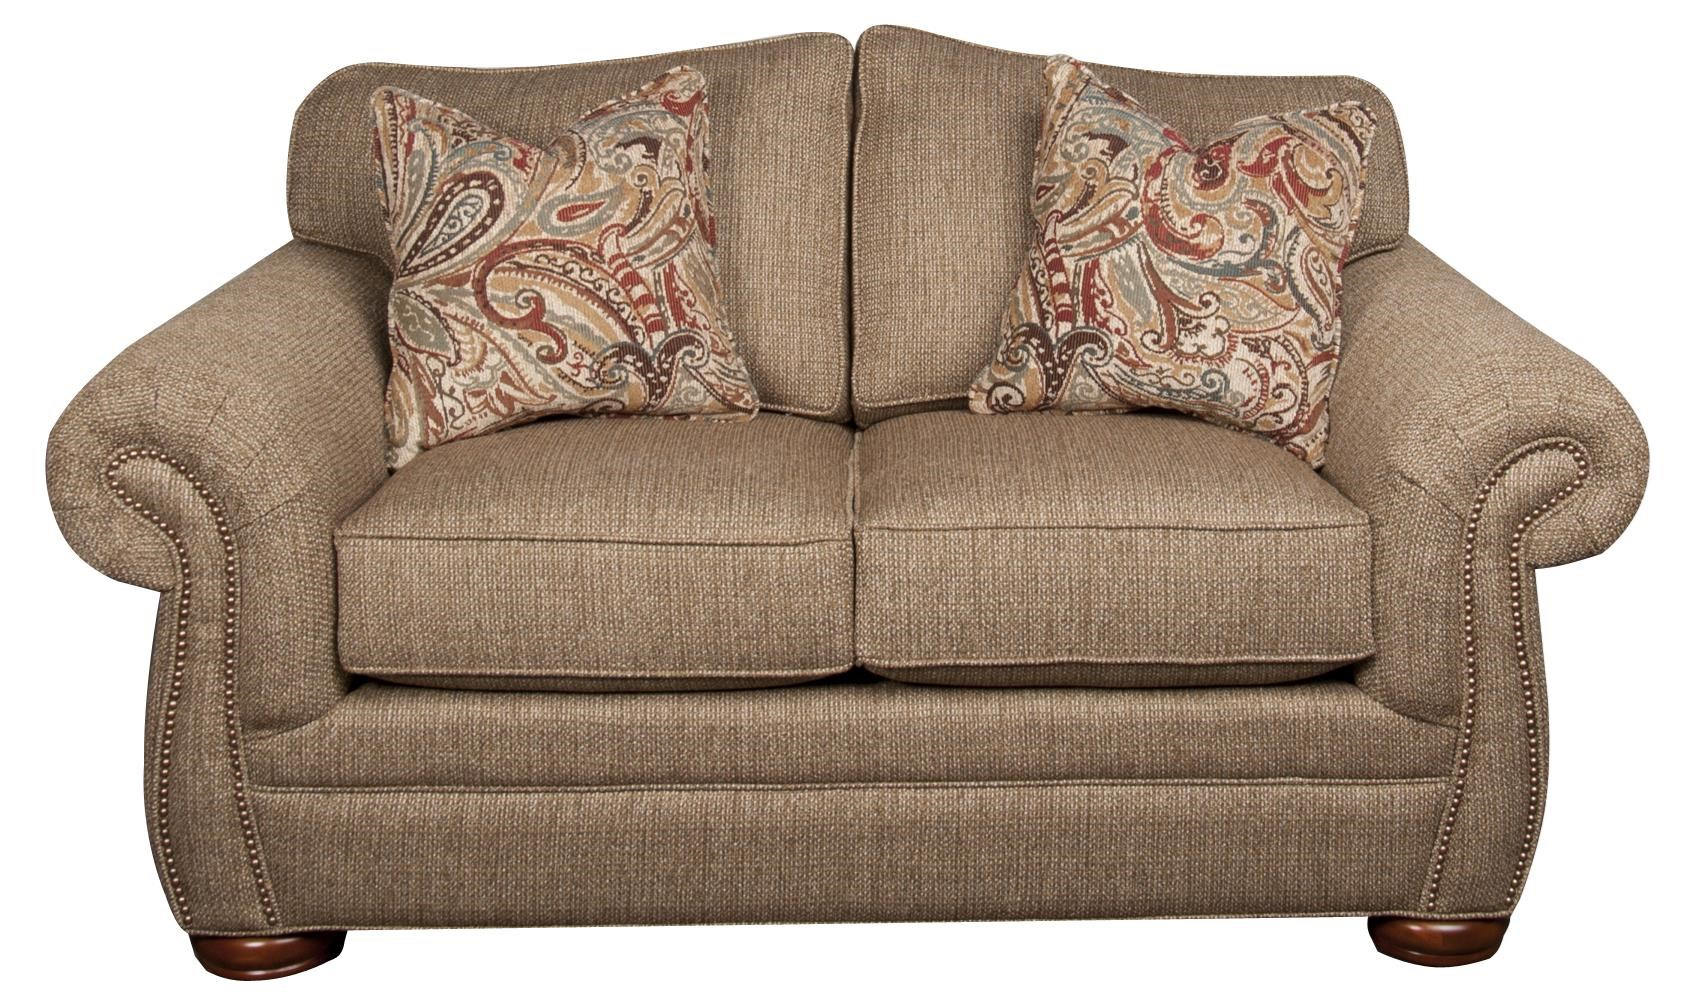 Morris Home Furnishings Rosemary Rosemary Loveseat - Item Number: 104251309